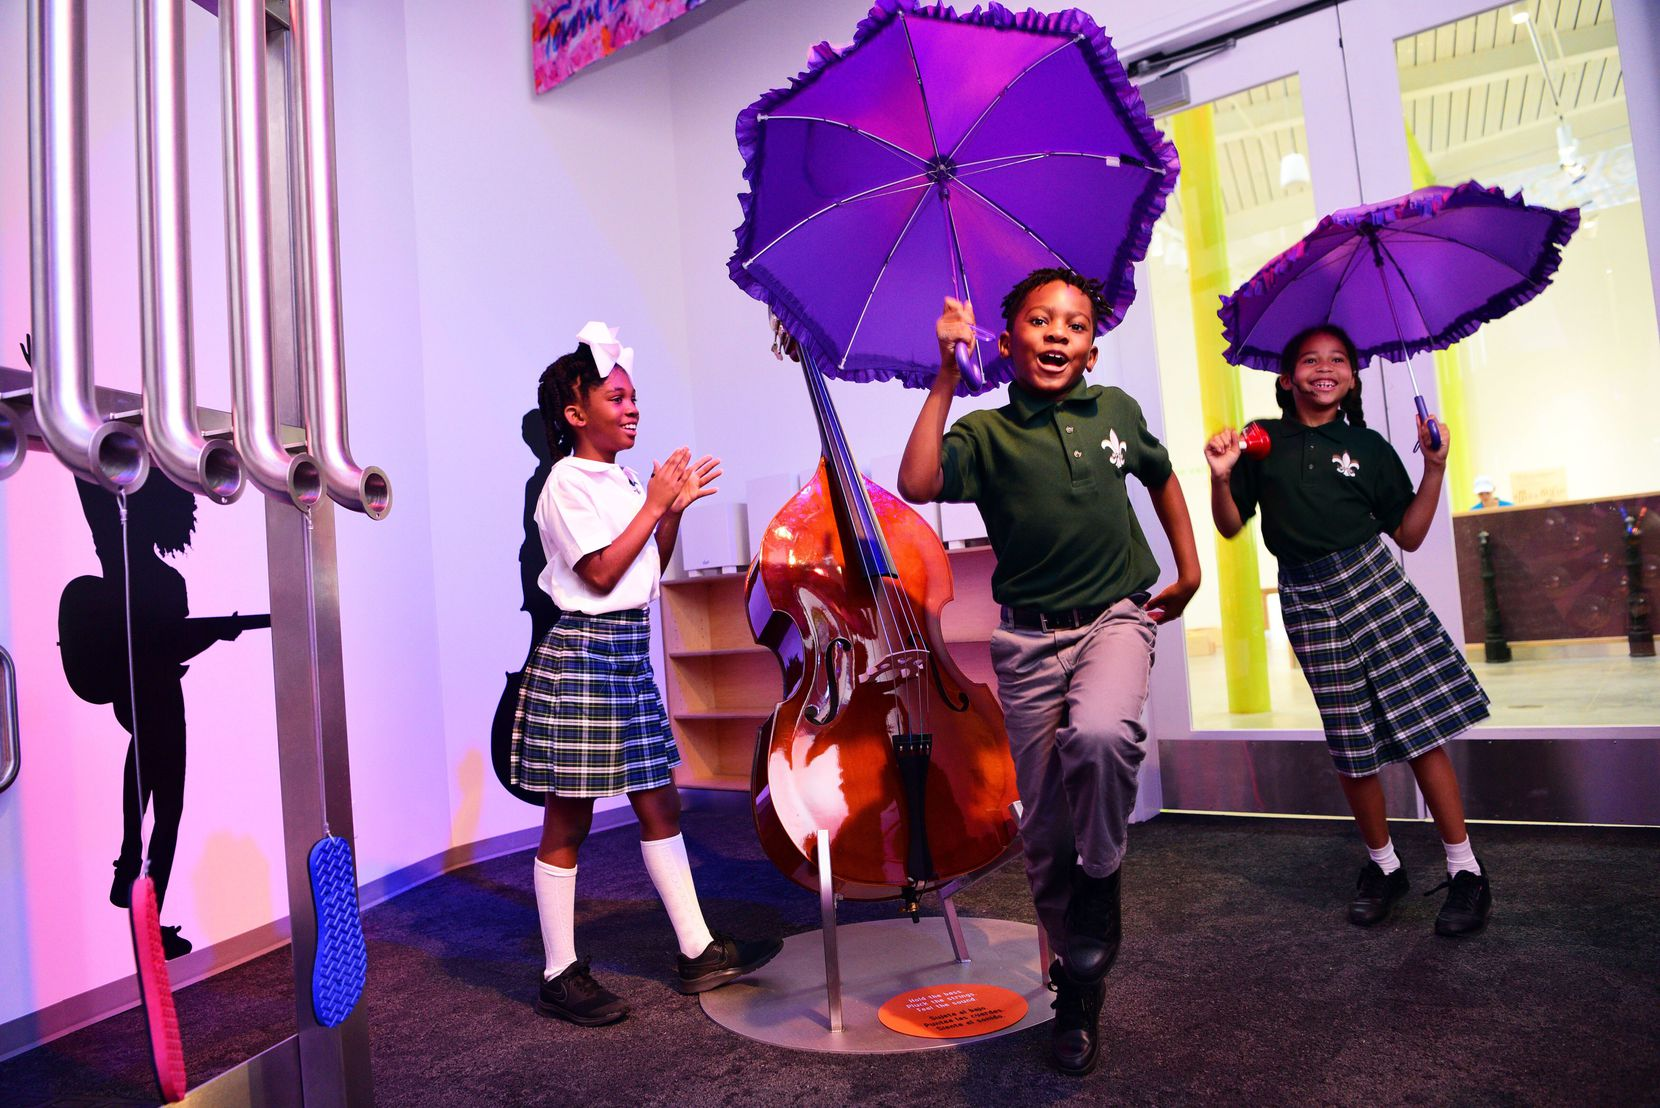 Kids dance at the Louisiana Children's Museum in New Orleans.